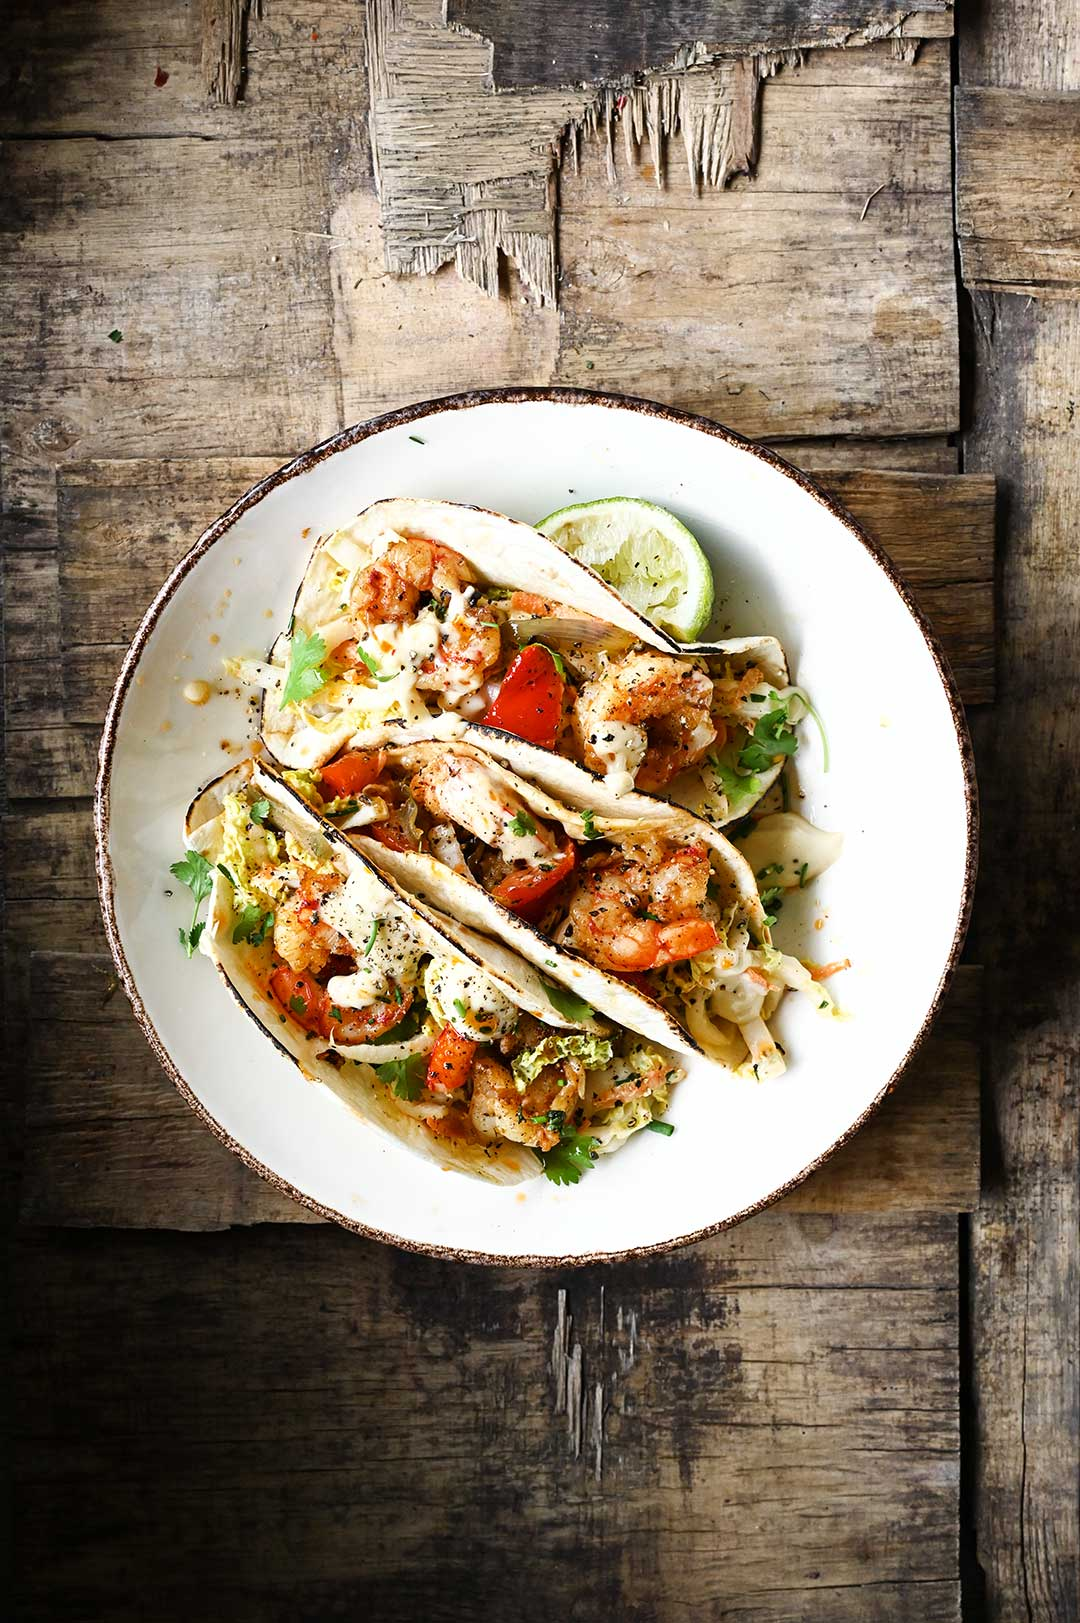 serving dumplings | Spicy shrimp tacos with miso aioli slaw